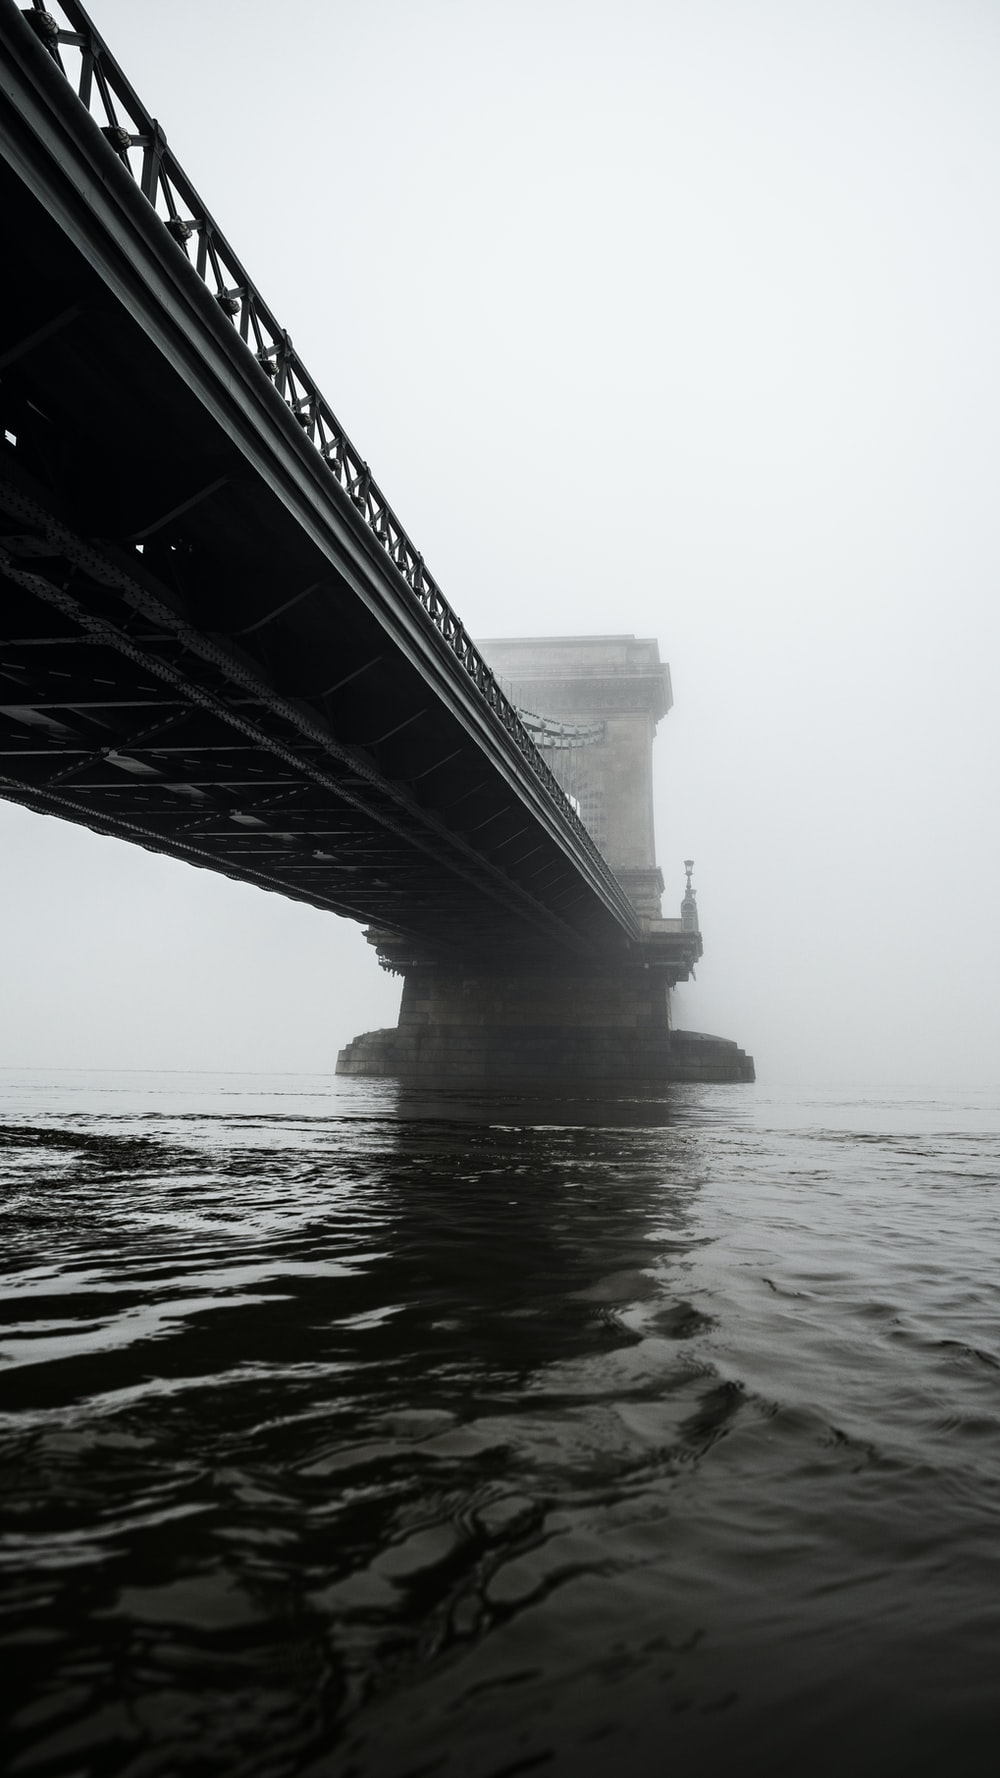 grayscale photography of suspension bridge across calm water